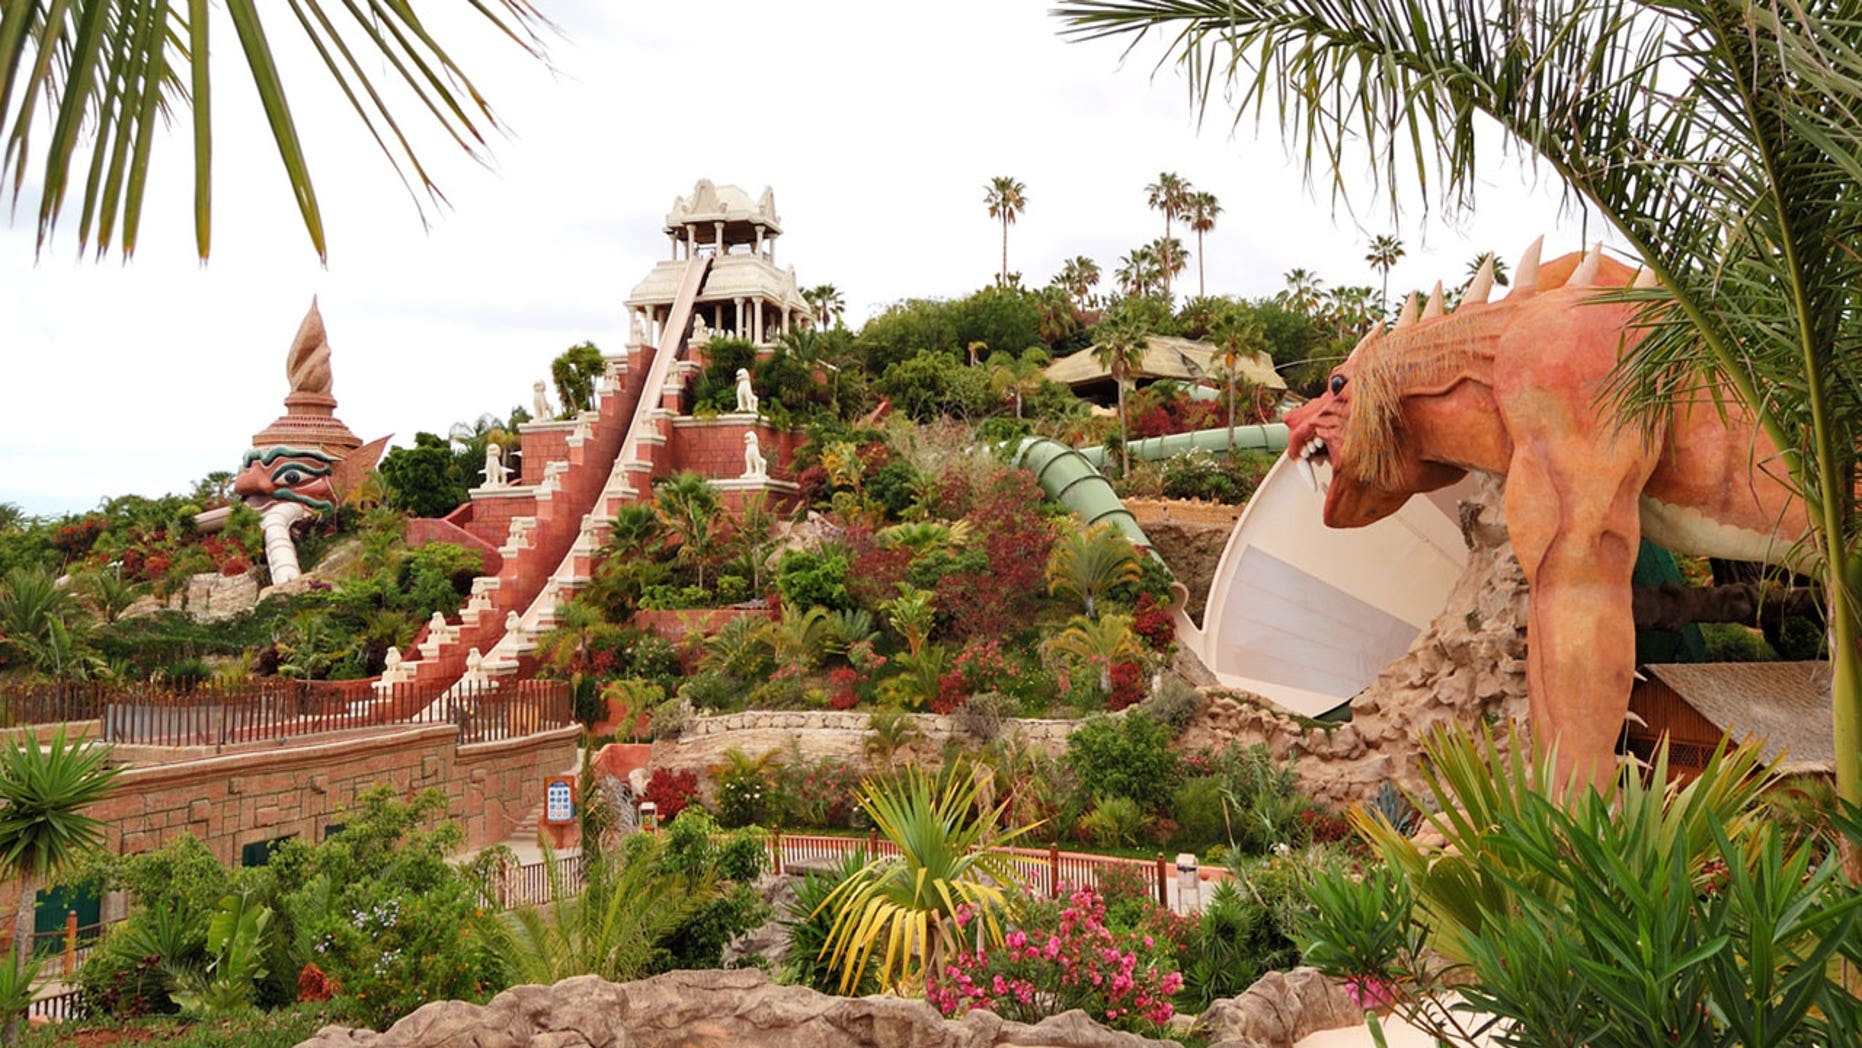 Siam Park is home to a couple of truly frightening rides.